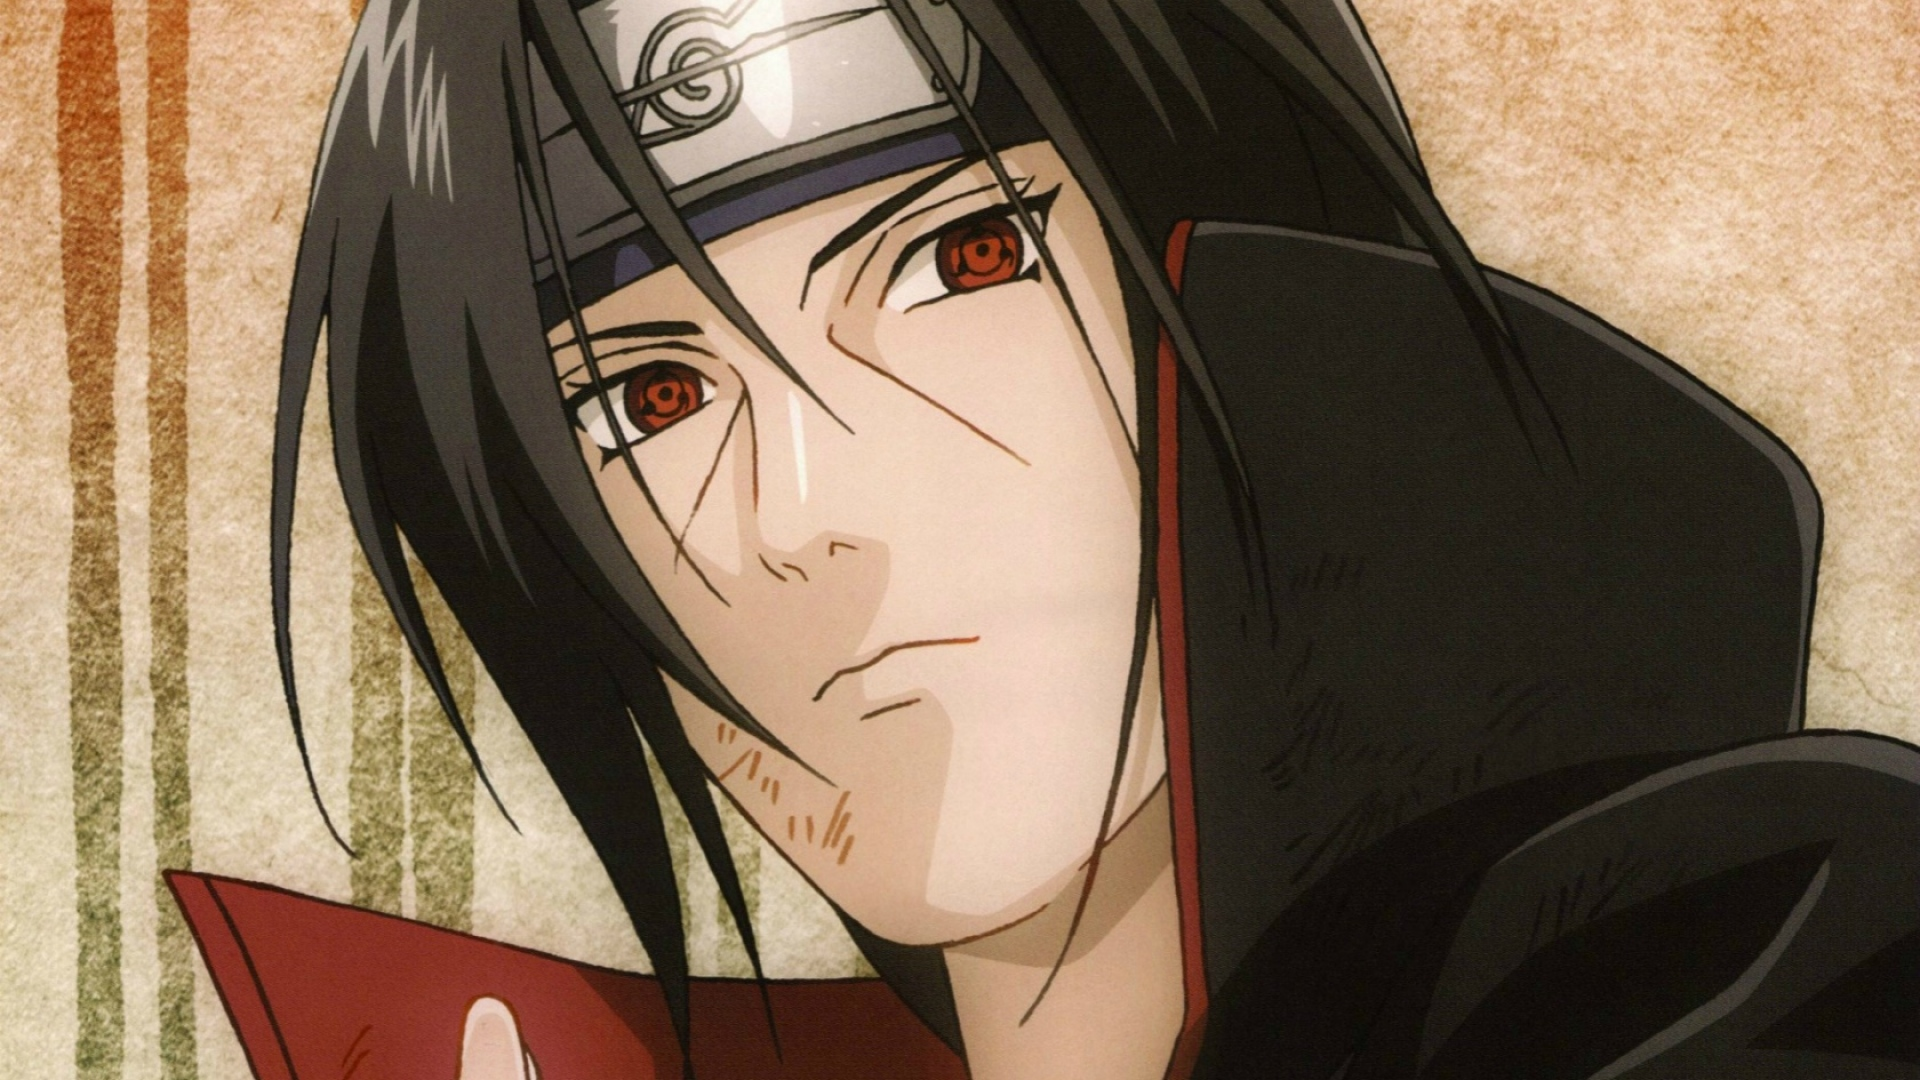 1920x1080-naruto-itachi-uchiha-sharingan-face-art-wallpaper-wpc5801025